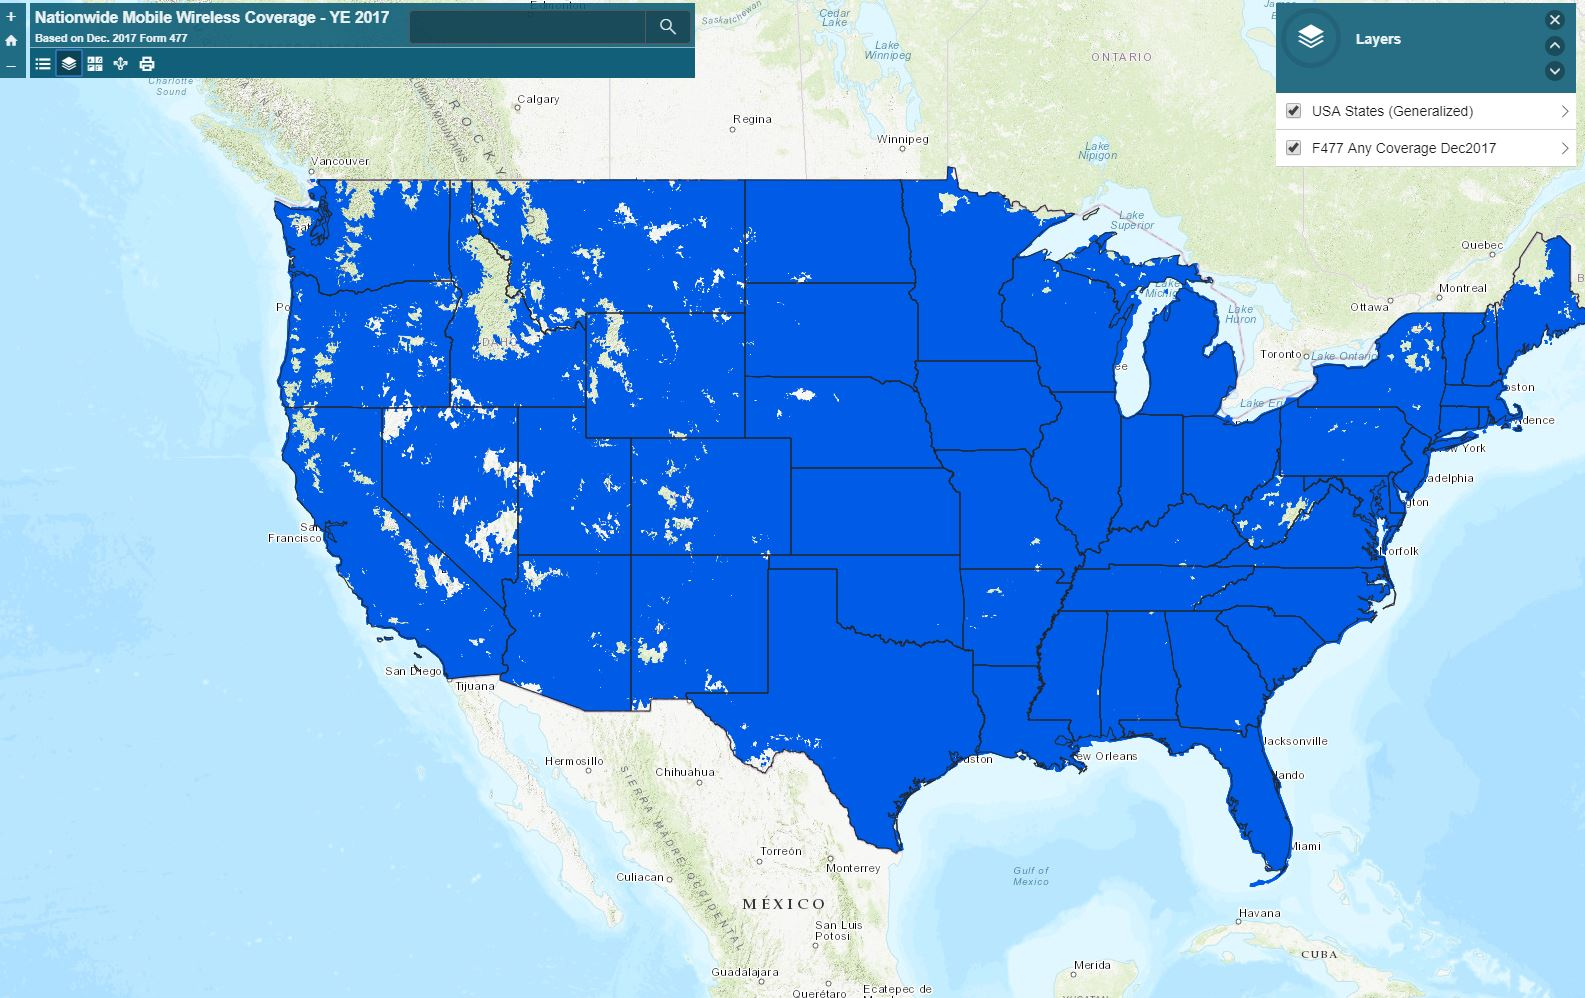 Nationwide Mobile Coverage YE2017